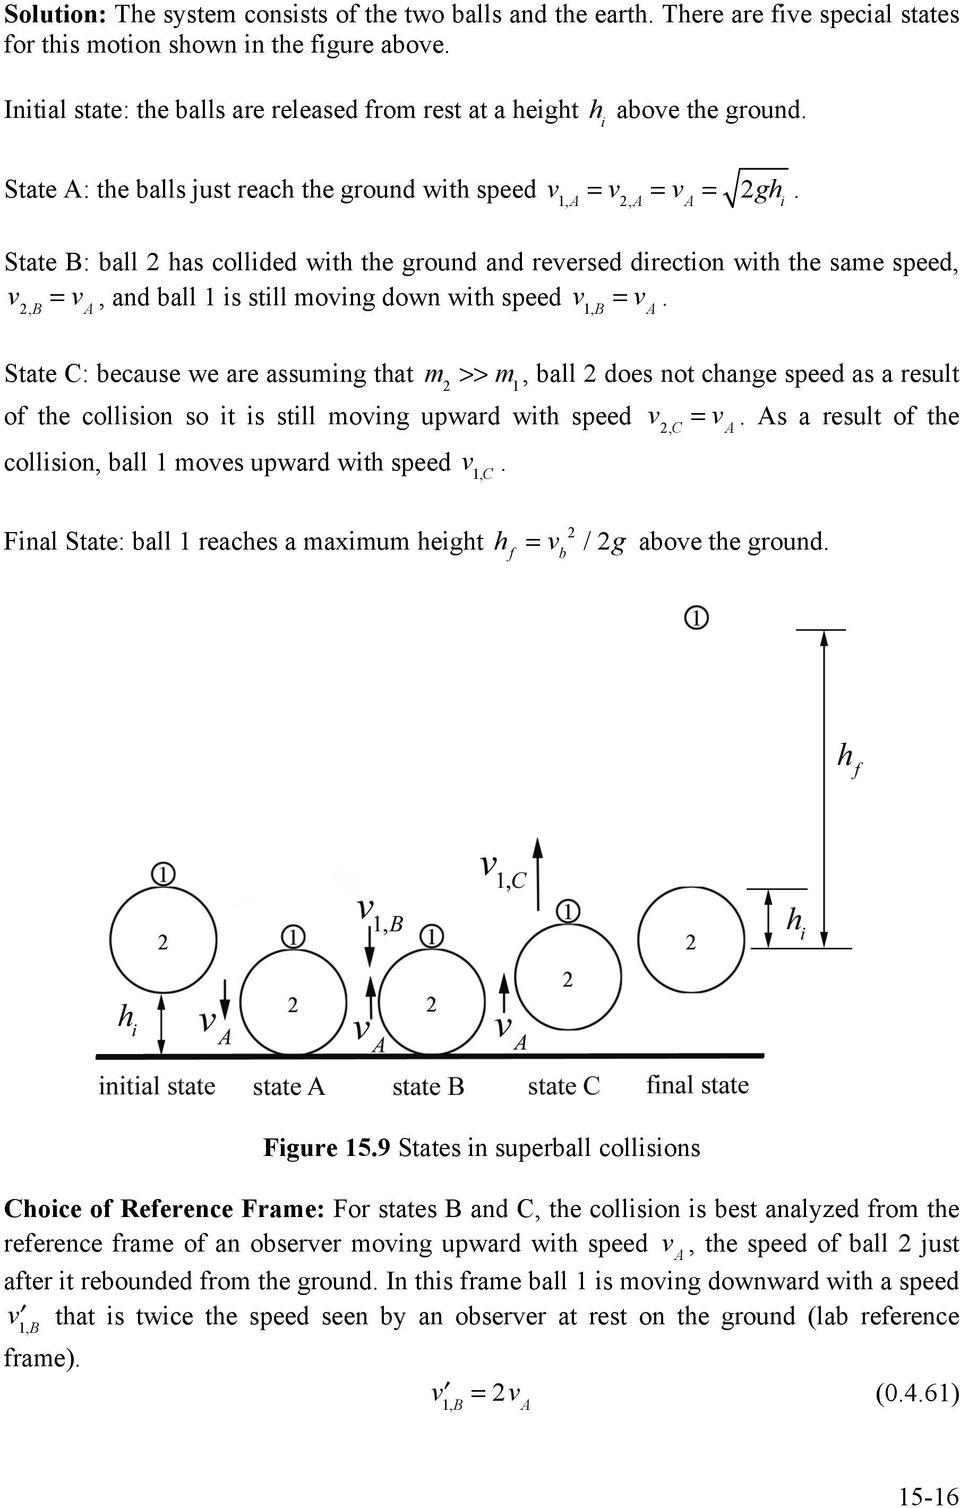 ball 1 is still moving down with speed v 1,B = v A State C: because we are assuming that m >>, ball does not change speed as a result of the collision so it is still moving upward with speed v,c = v